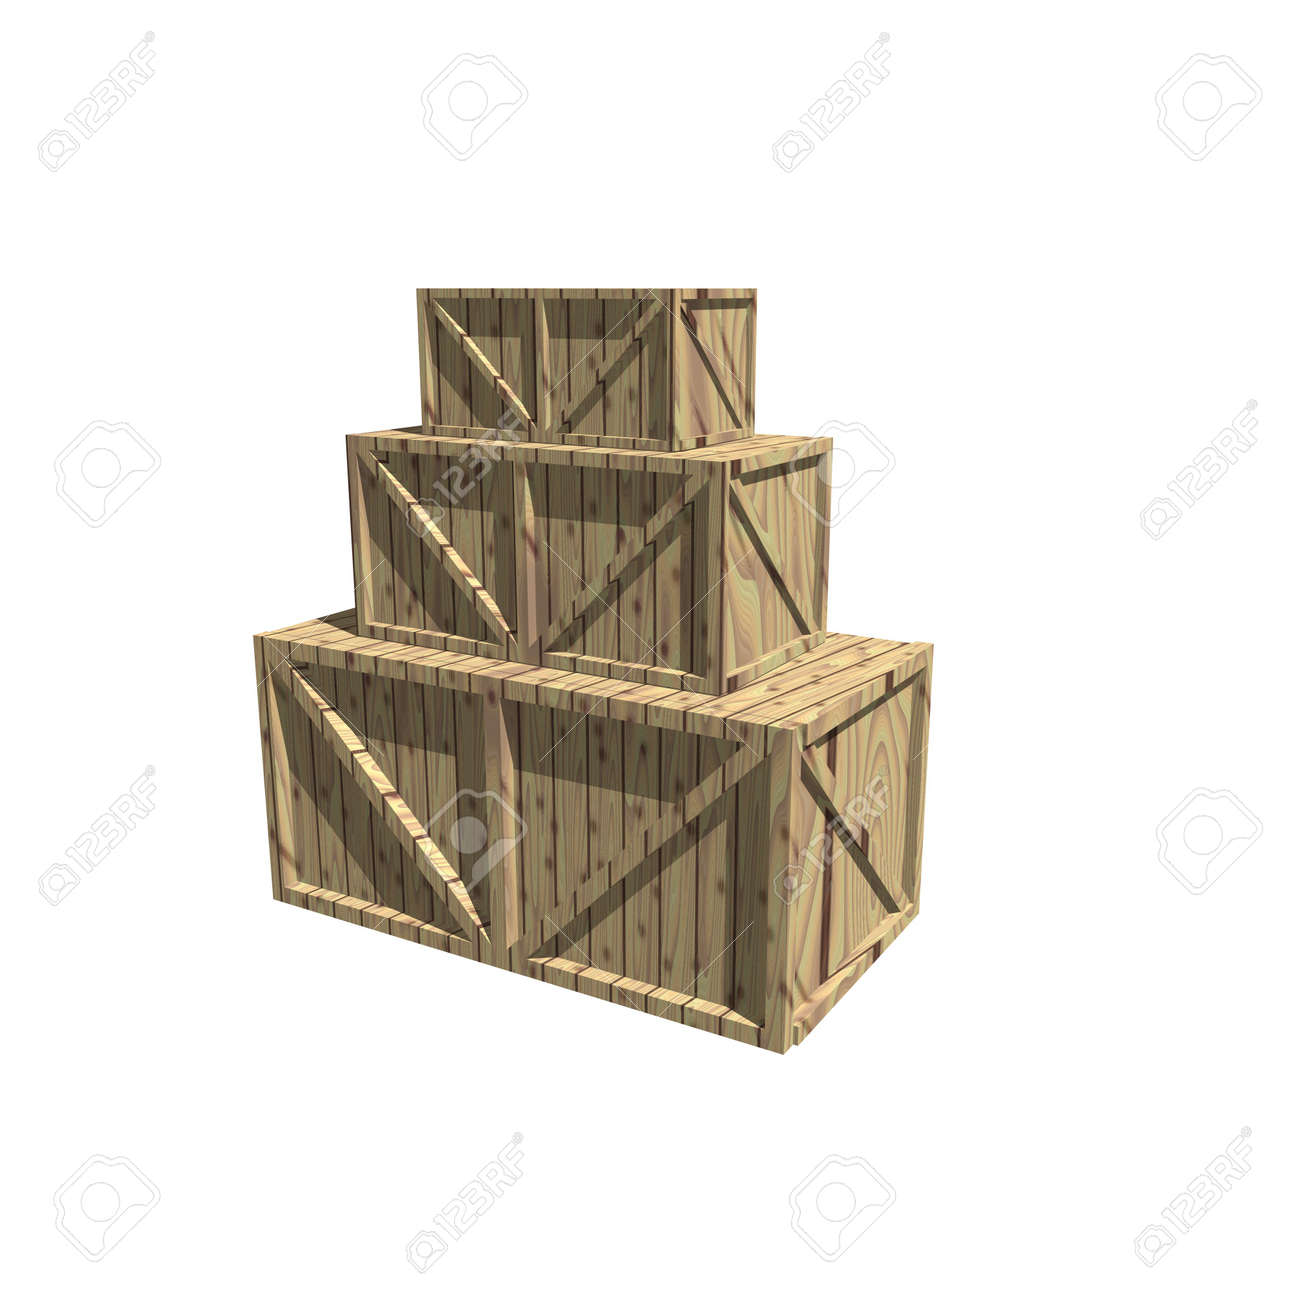 Wooden crates isolated on white Stock Photo - 3879092